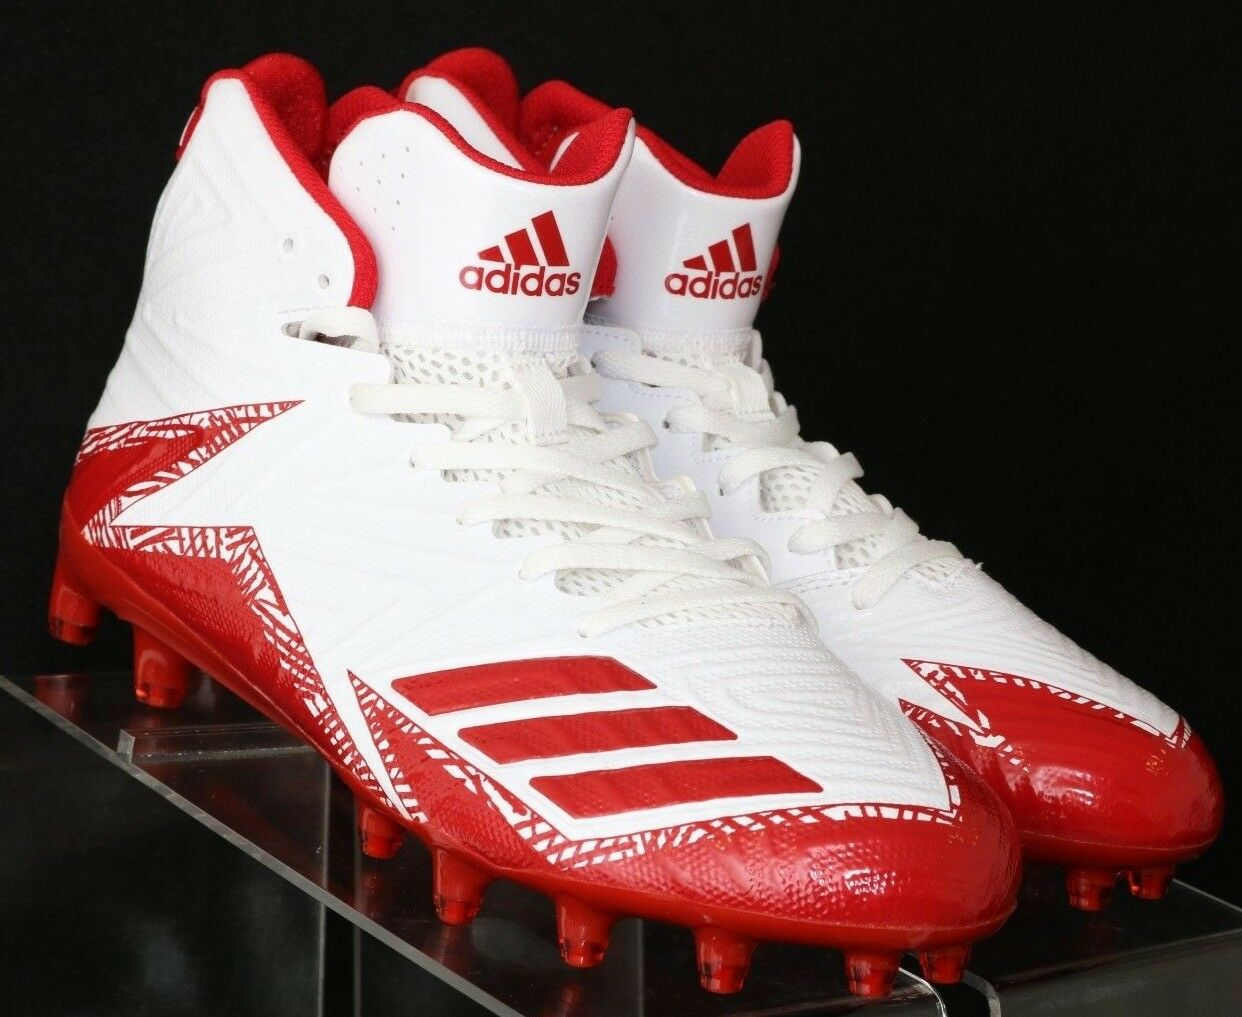 Adidas Freak X Carbon High Sprinskin Football Cleats shoes White Men's 10